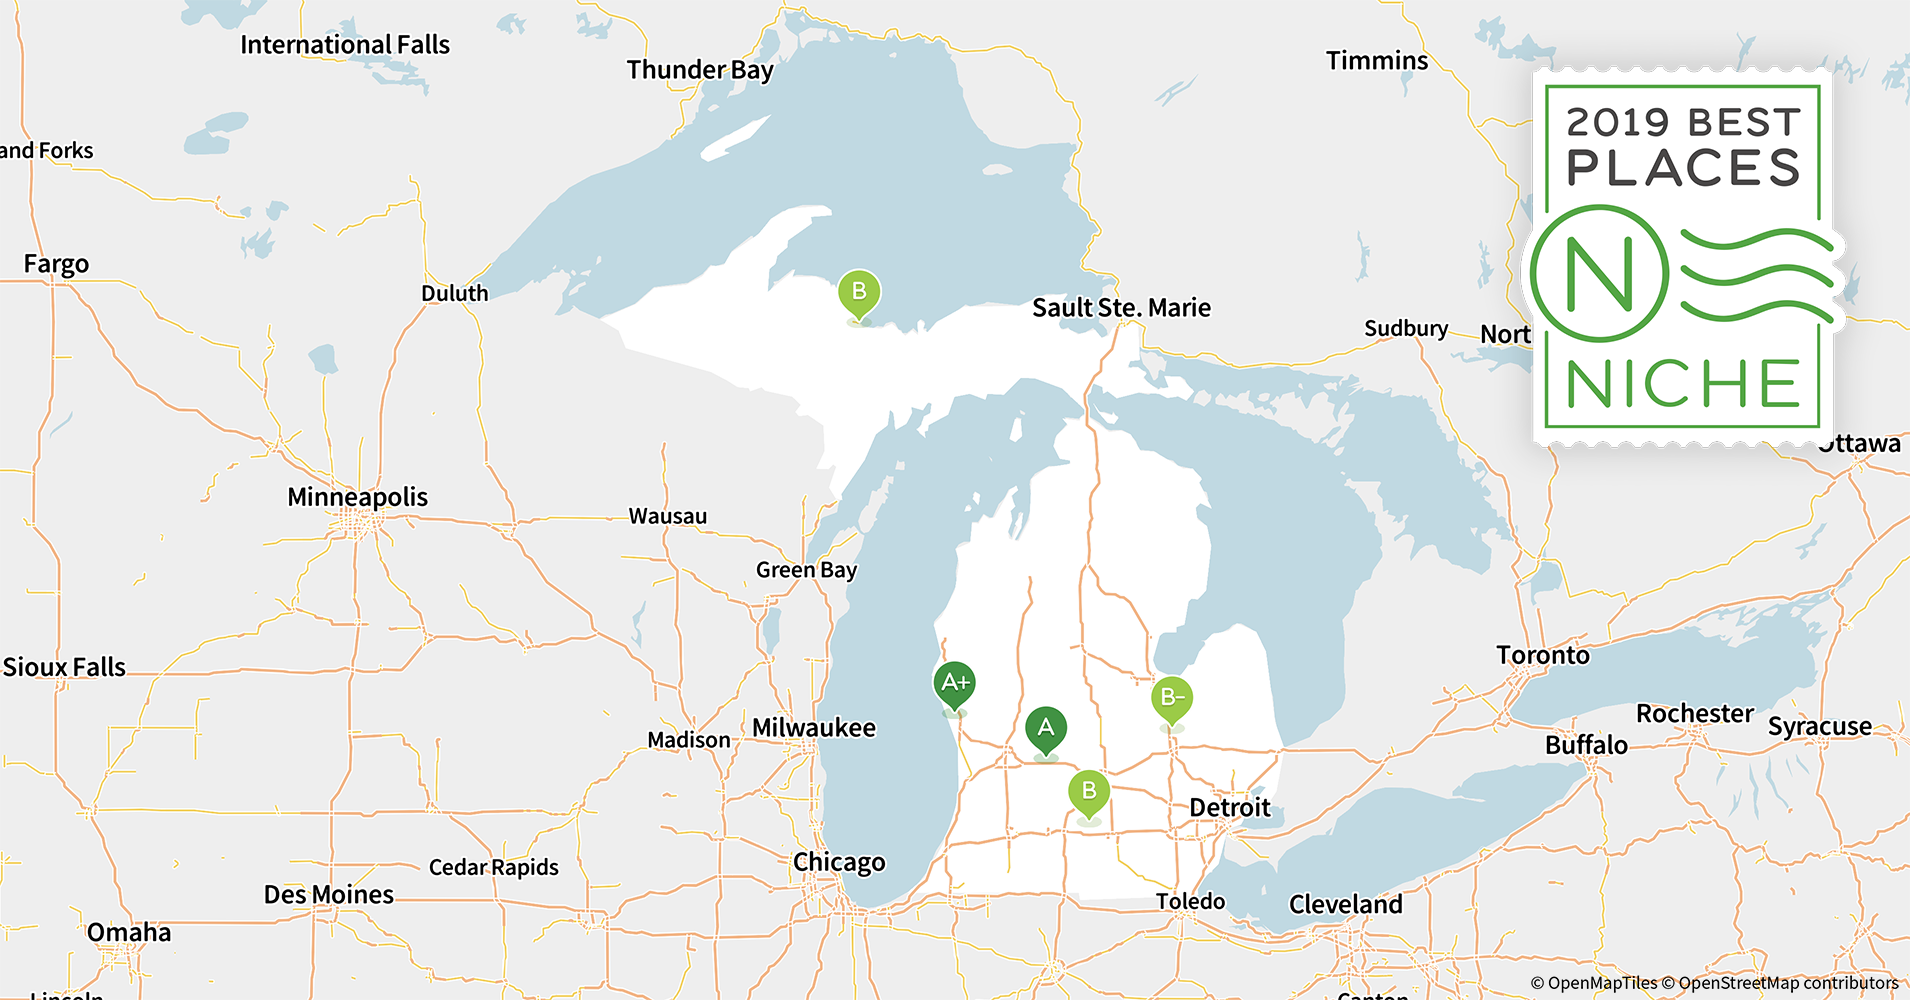 2019 Best Places to Live in Michigan - Niche